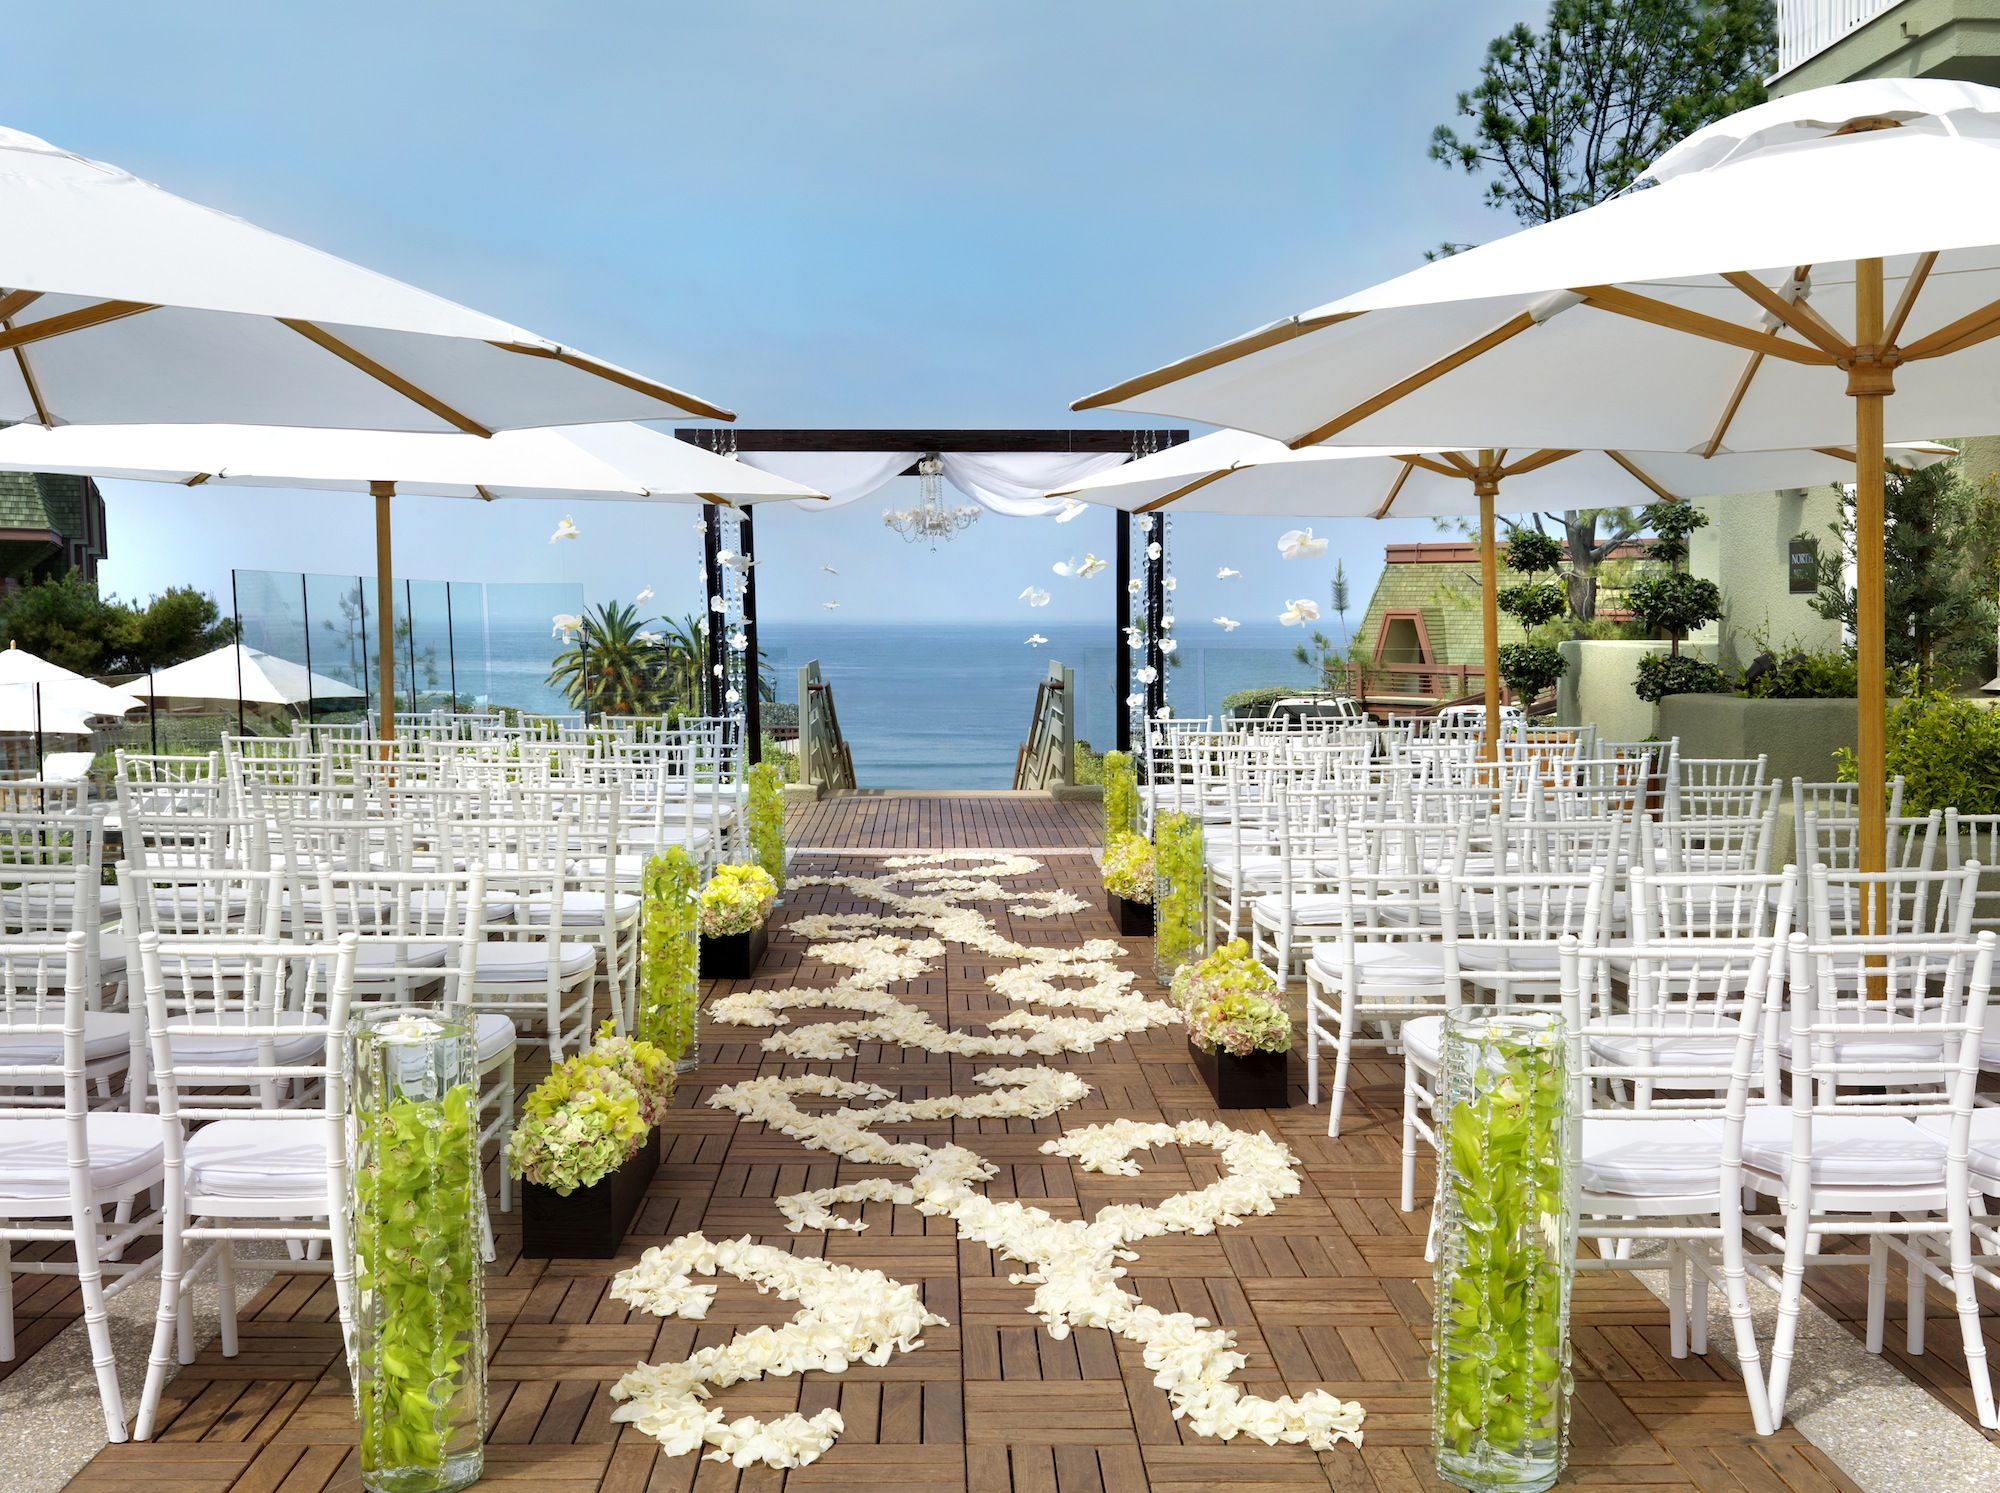 Destination Wedding Maybe Sea View Was More What You Had In Mind